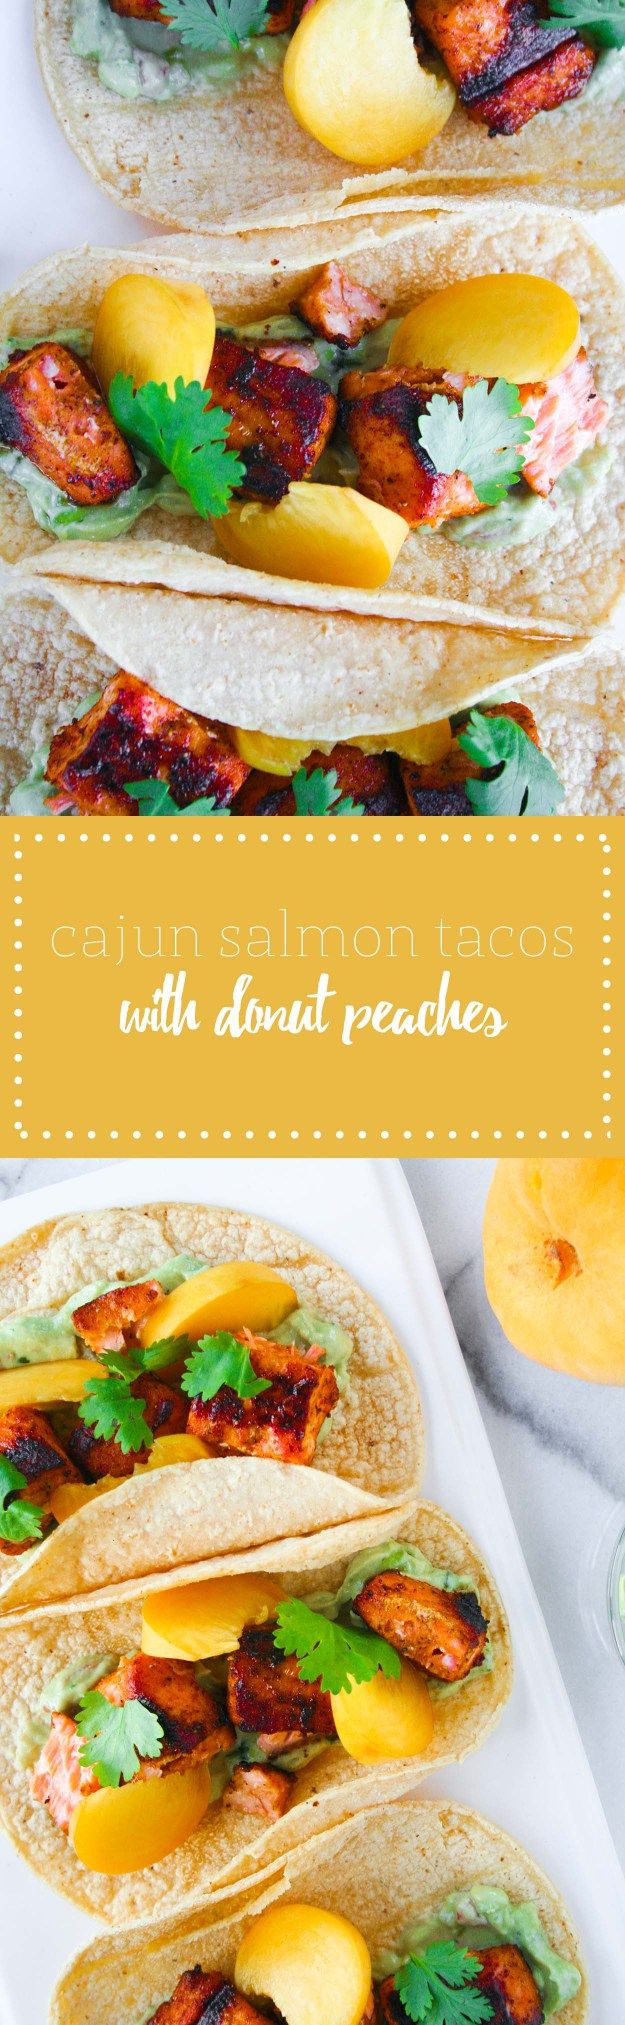 Cajun Salmon Tacos with Donut Peaches